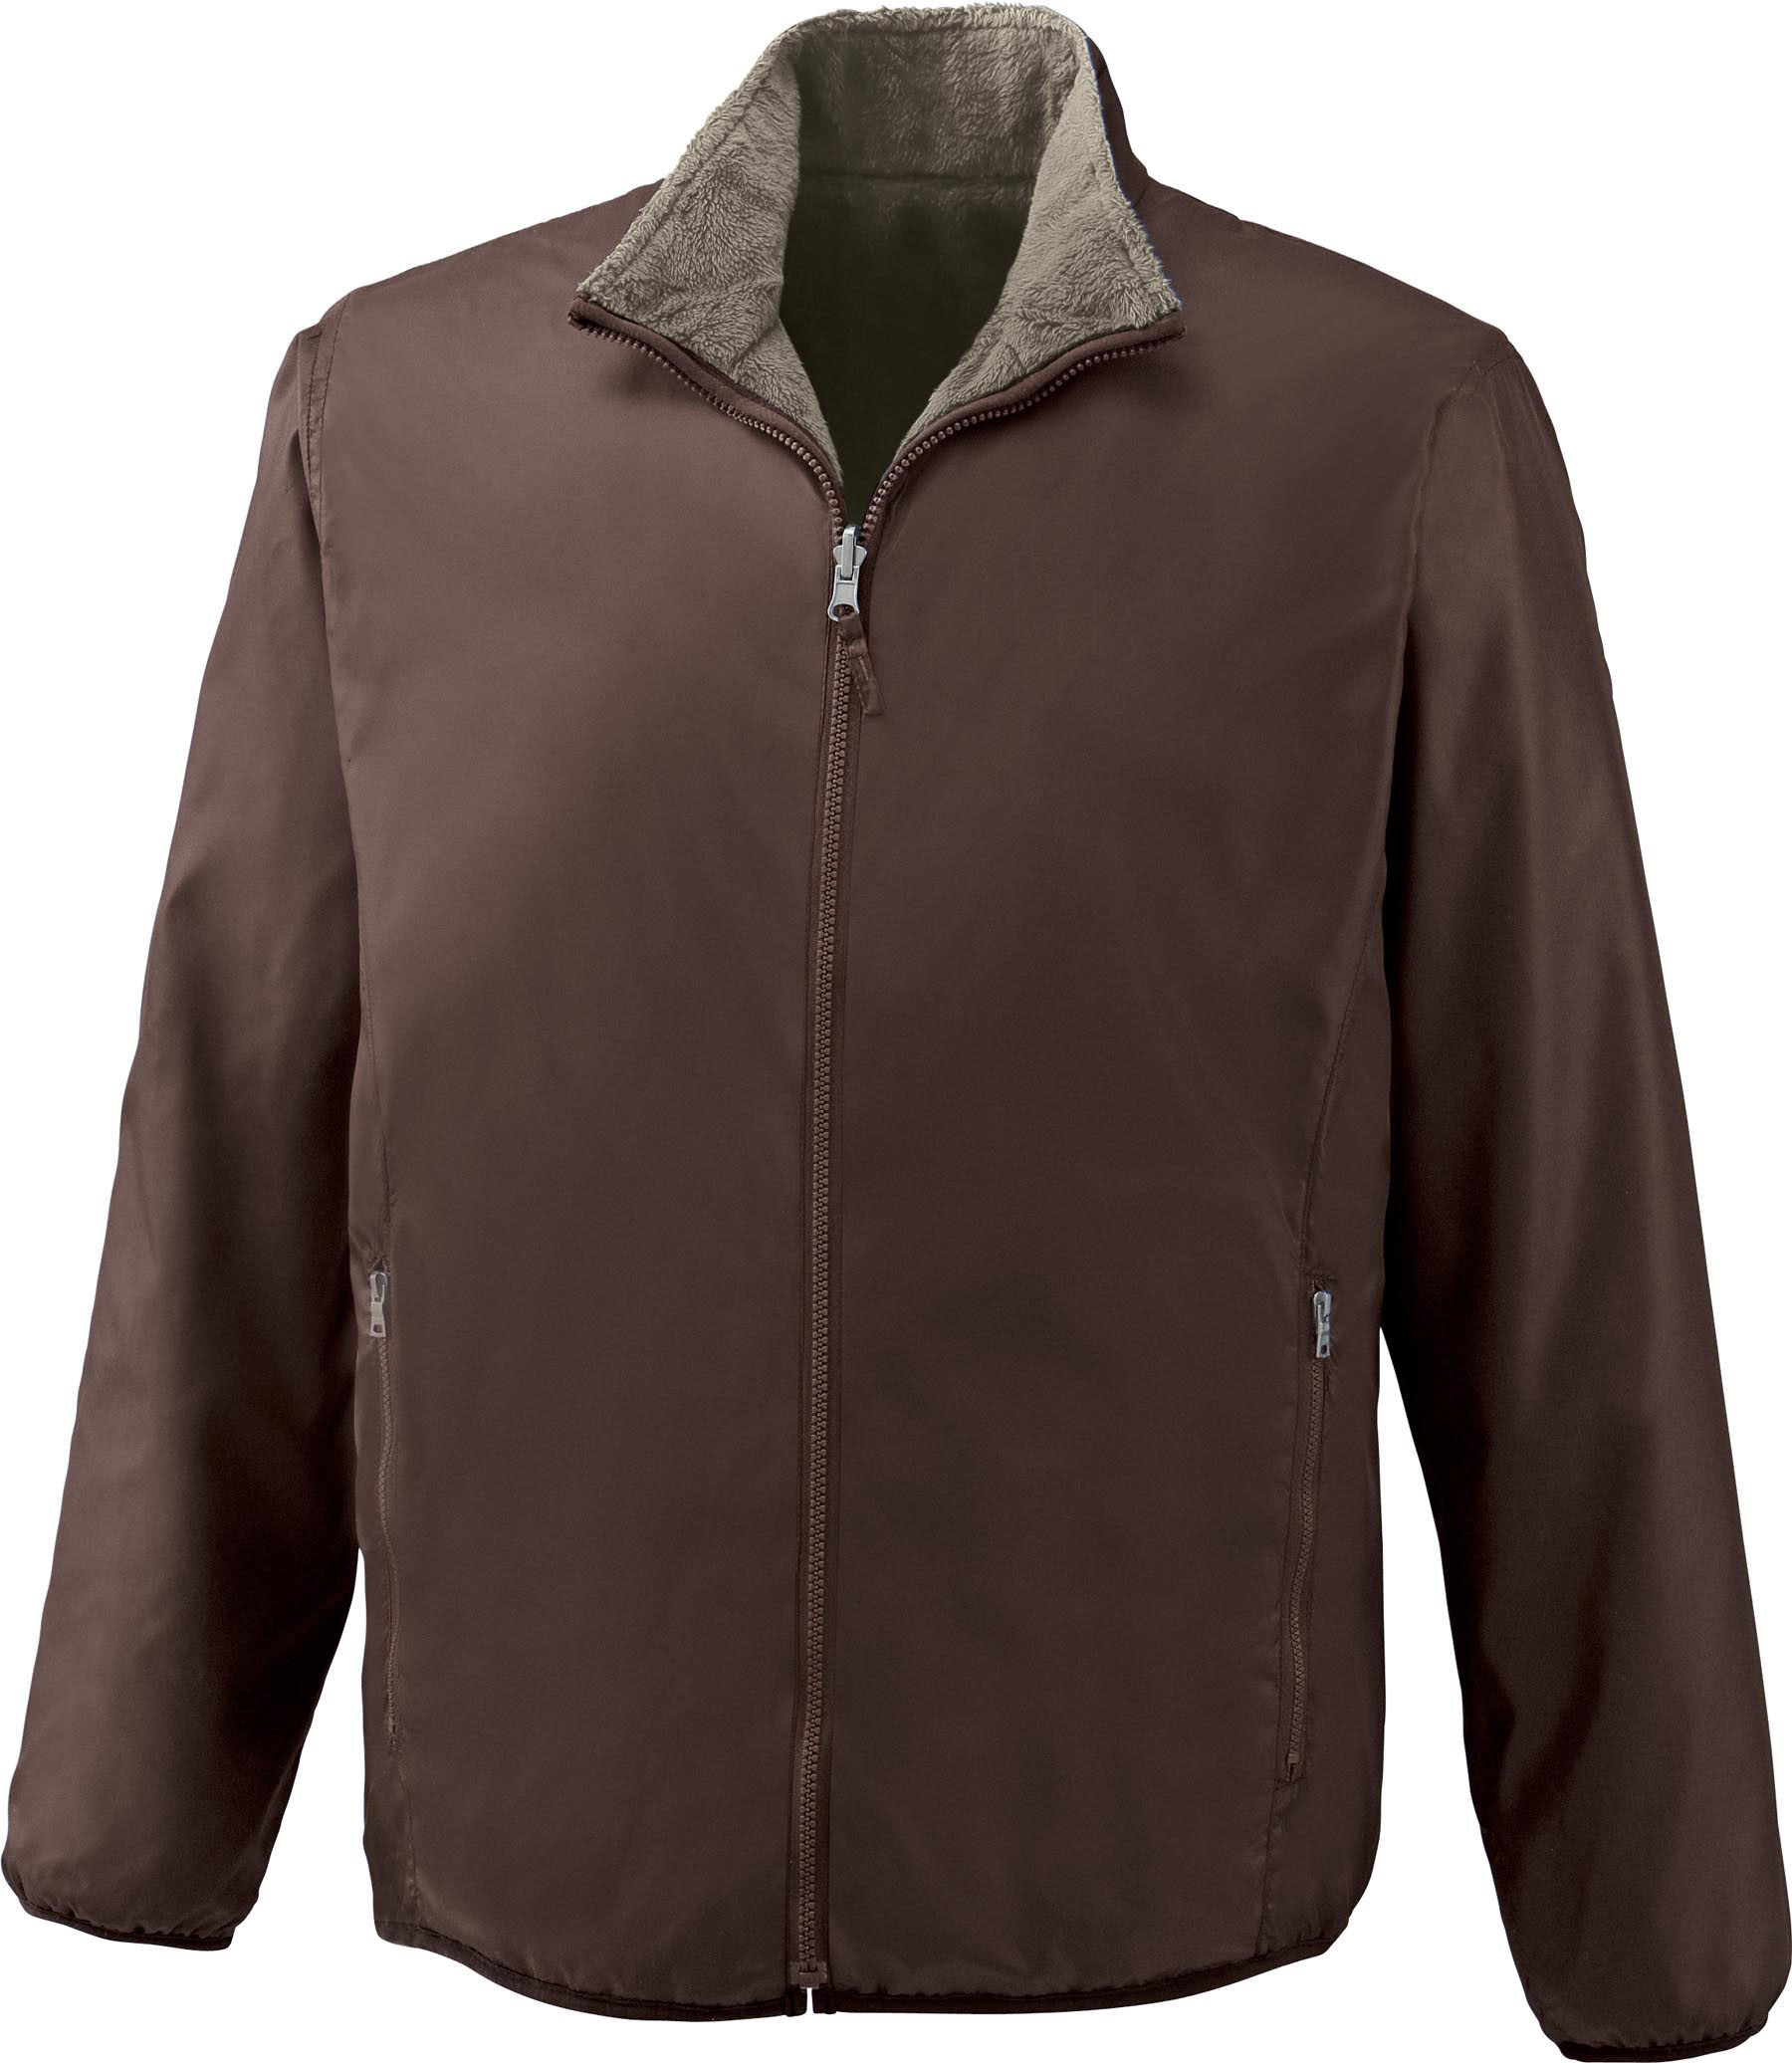 Ash City Reversible Jackets 88647 - Men's Reversible ...